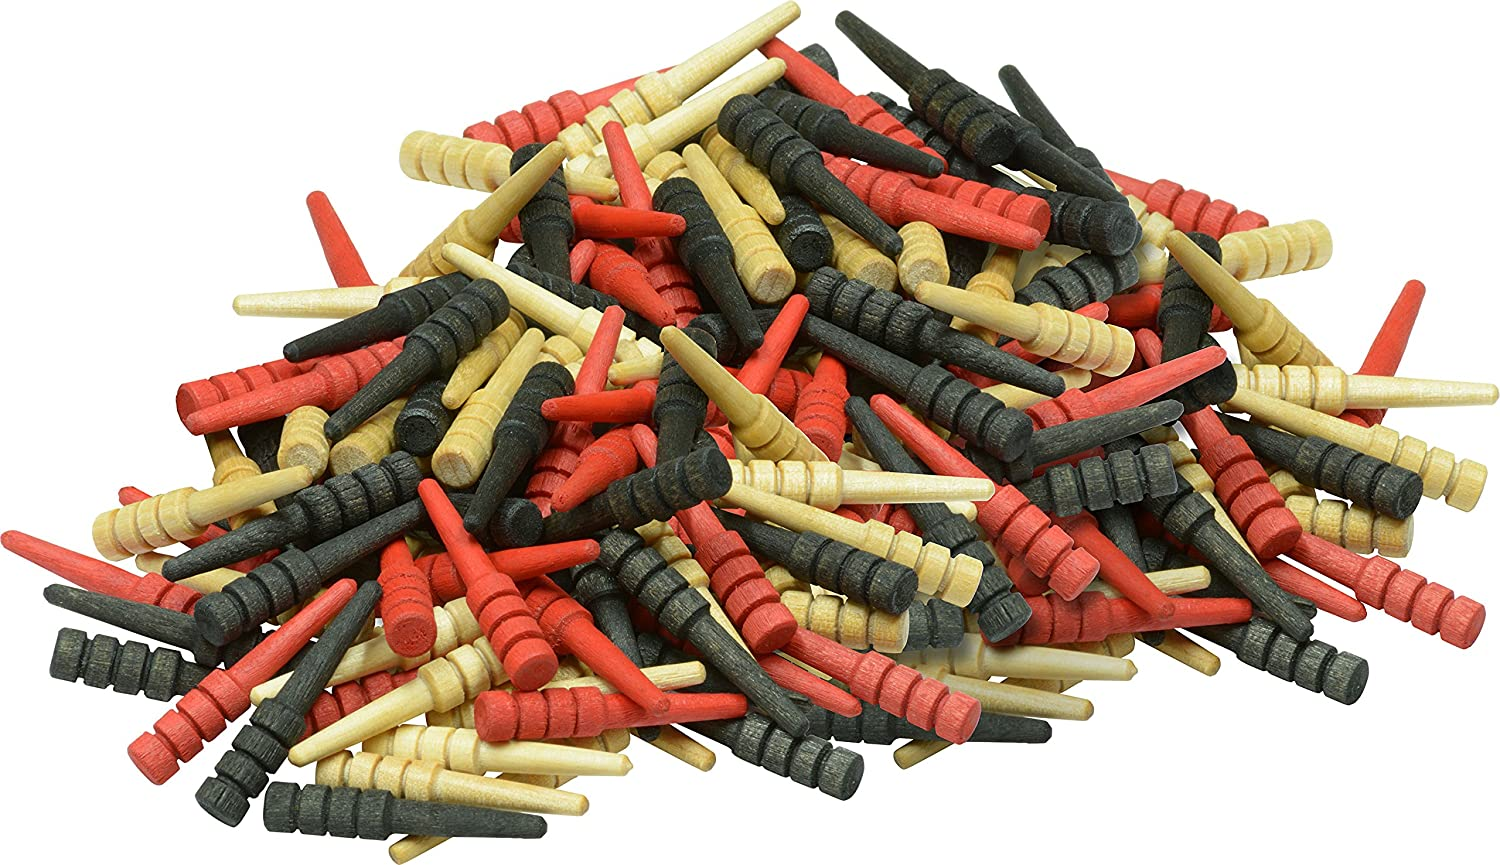 Long-awaited Wood Cribbage Pegs - 180-piece Price reduction USA Made in Count